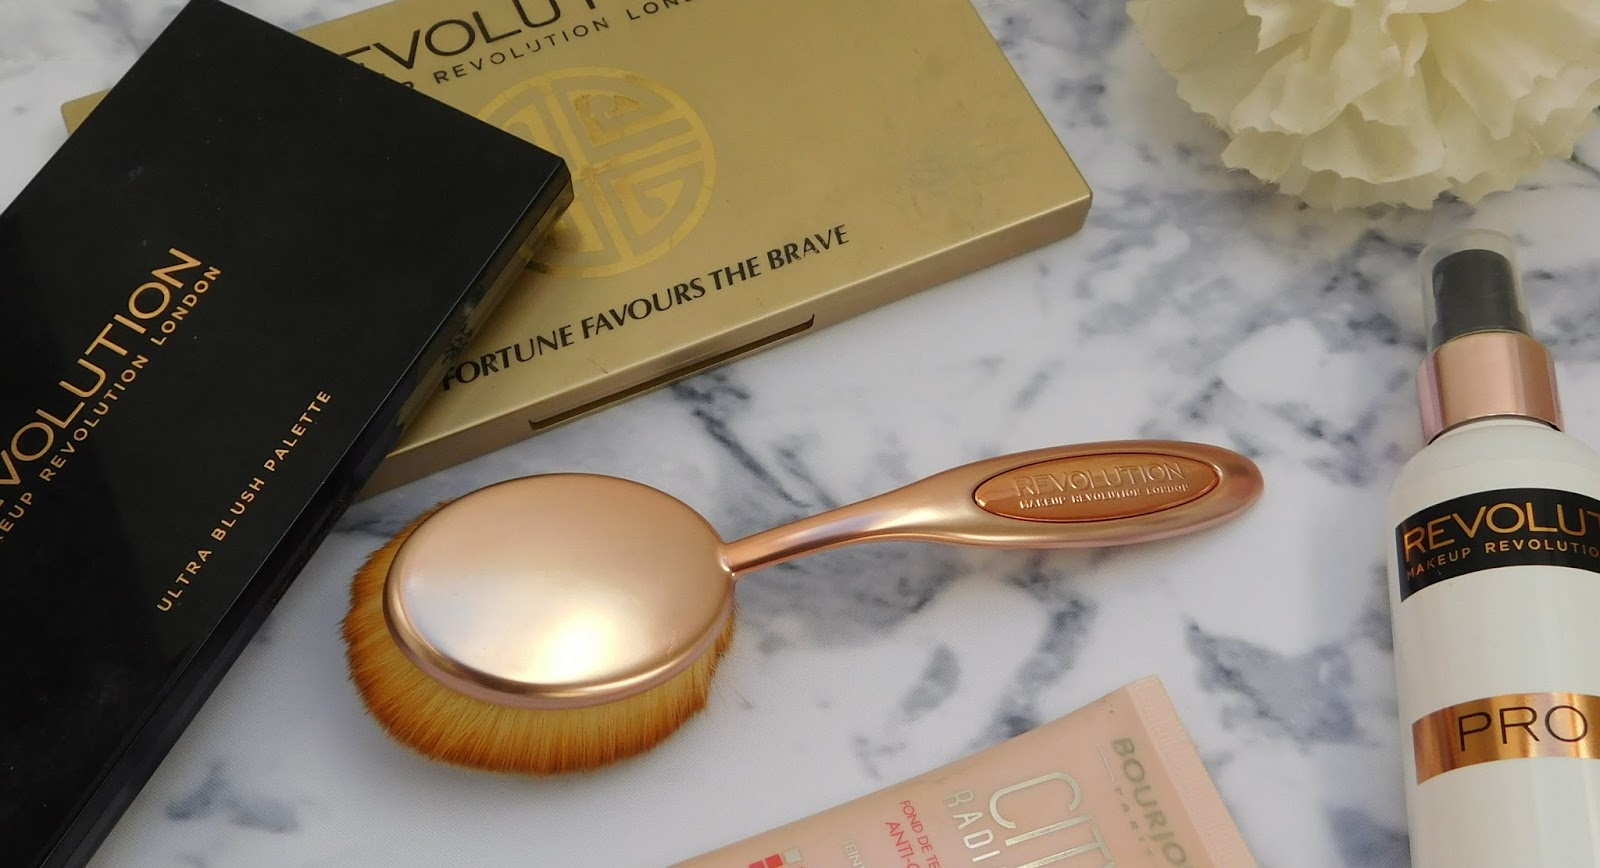 Makeup Revolution Precision Oval Brush Collection - First Impressions